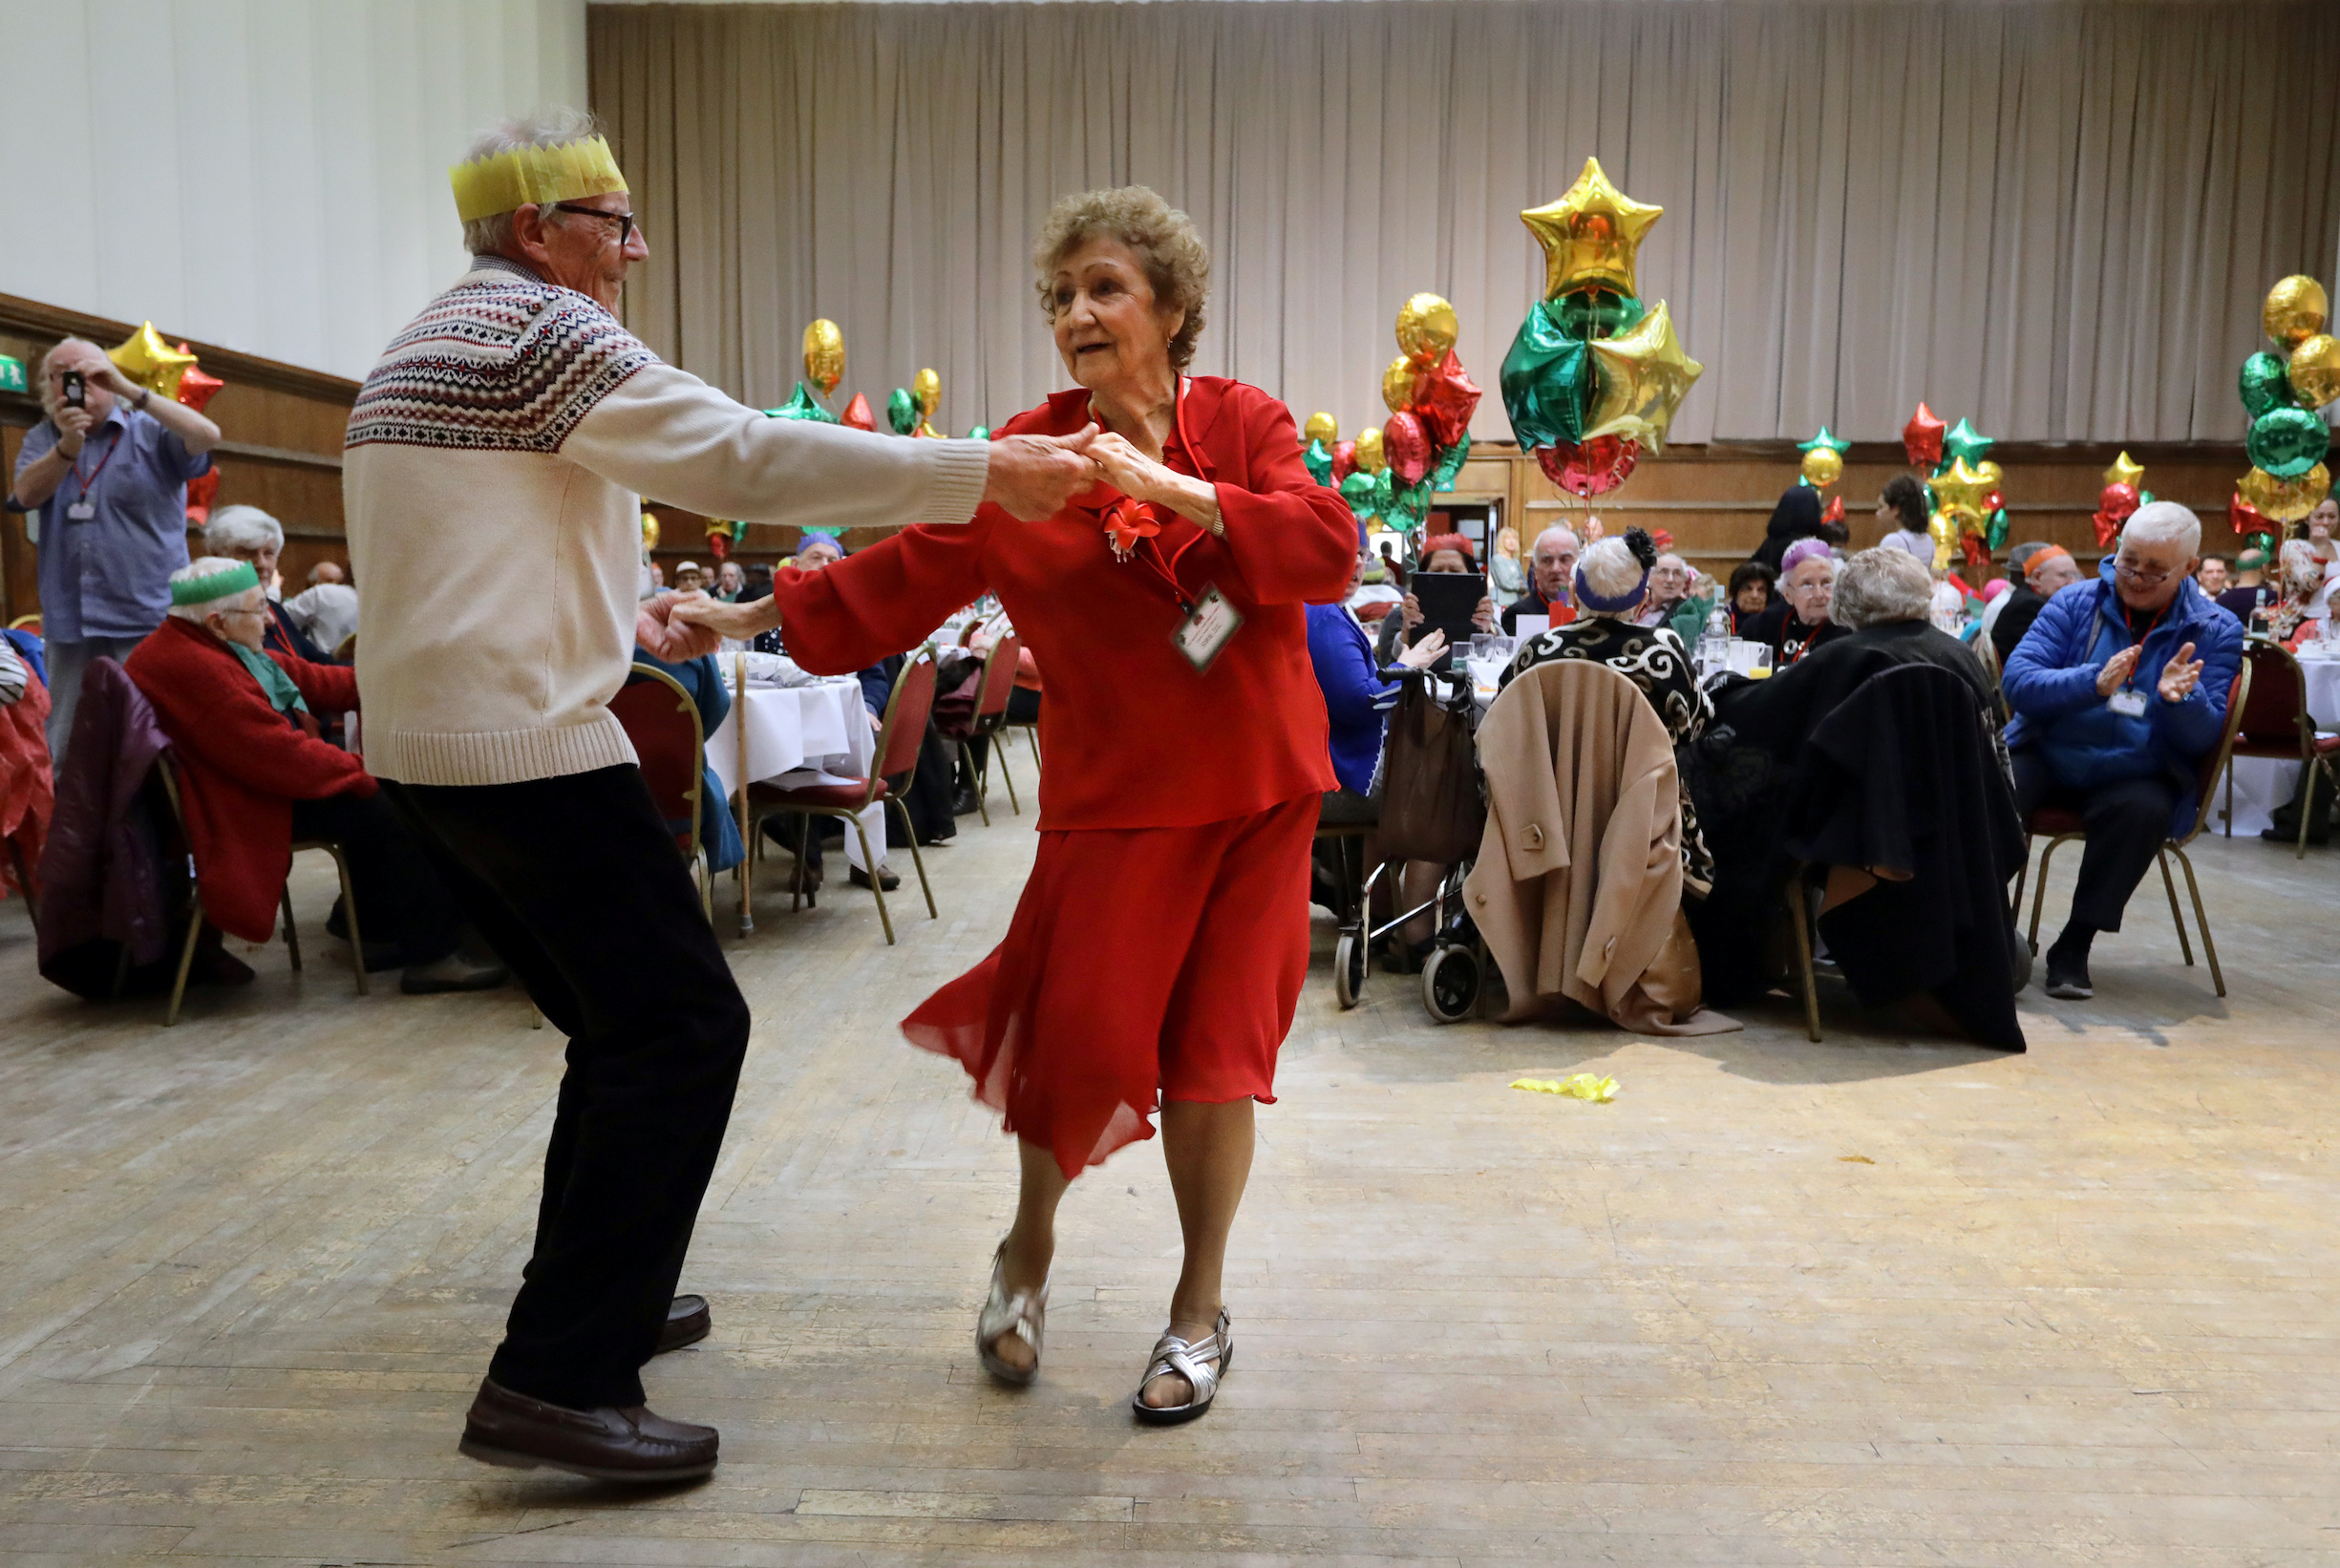 Anita Monk and her neighbour John Everett dance during a Christmas Dinner event for older people at Hammersmith and Fulham Town Hall in London, Britain December 25, 2016. REUTERS/Kevin Coombs - RC18585124A0